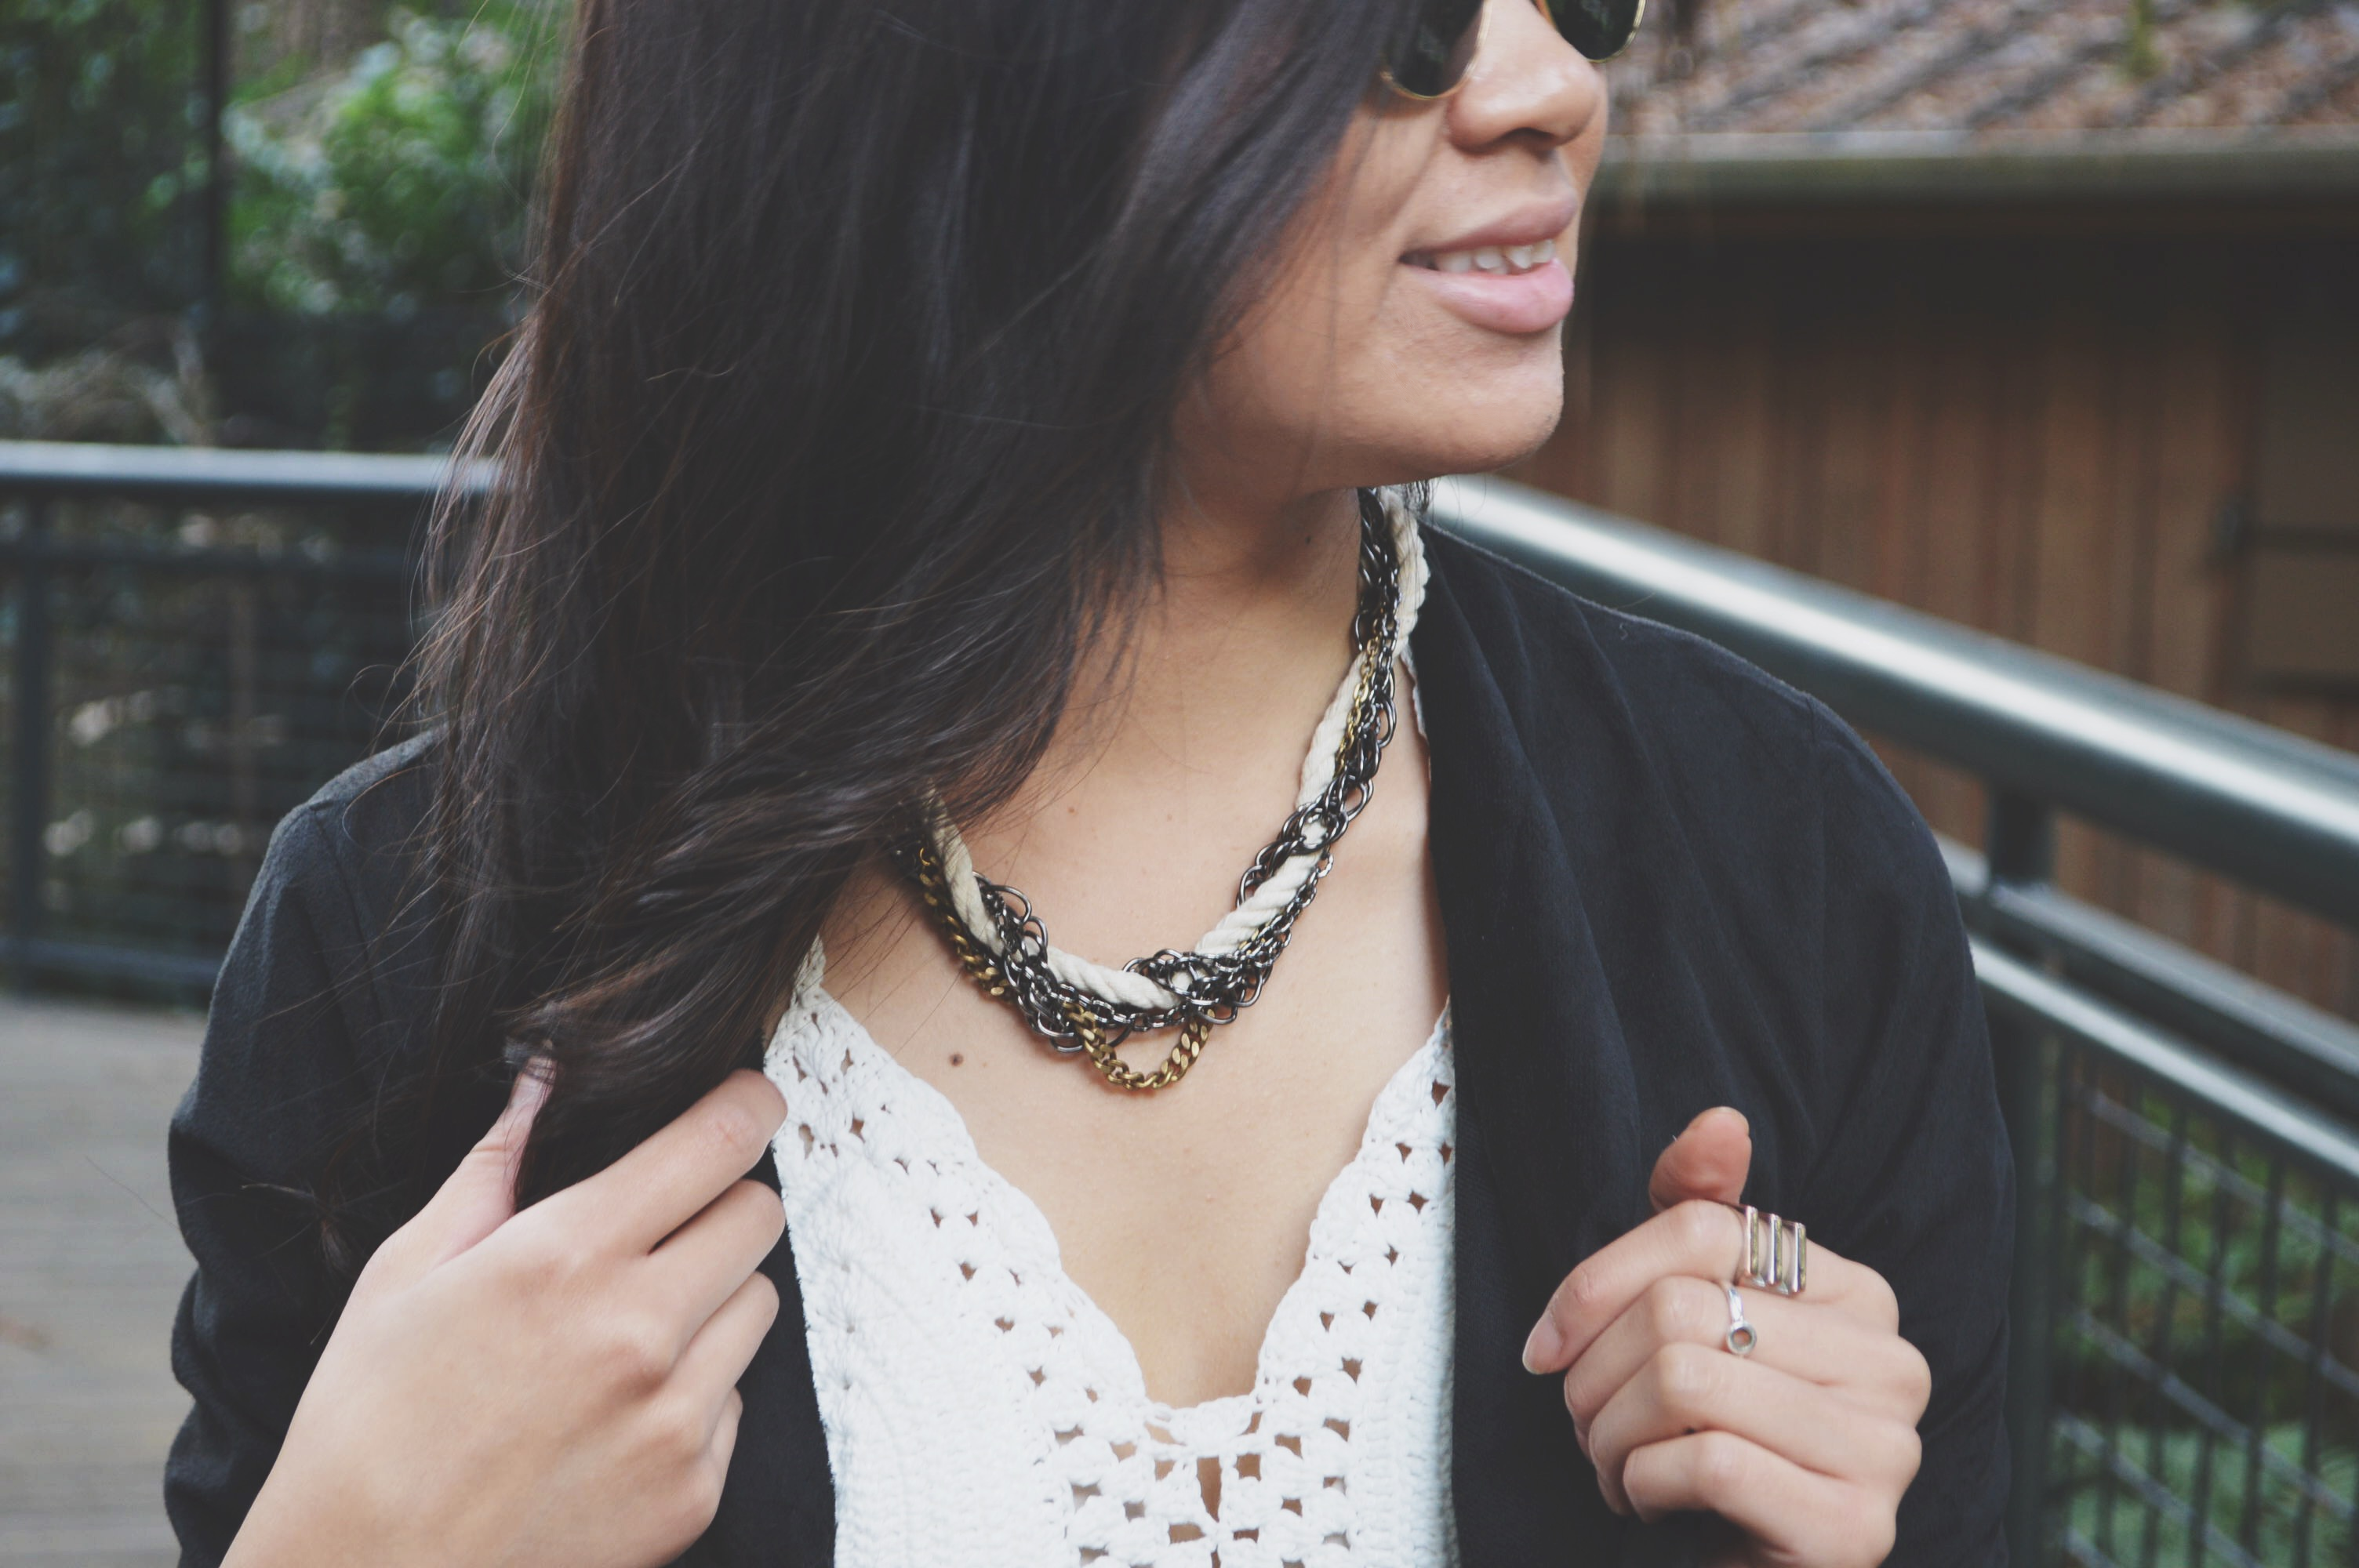 DIY: Braided Chain and Rope Necklace